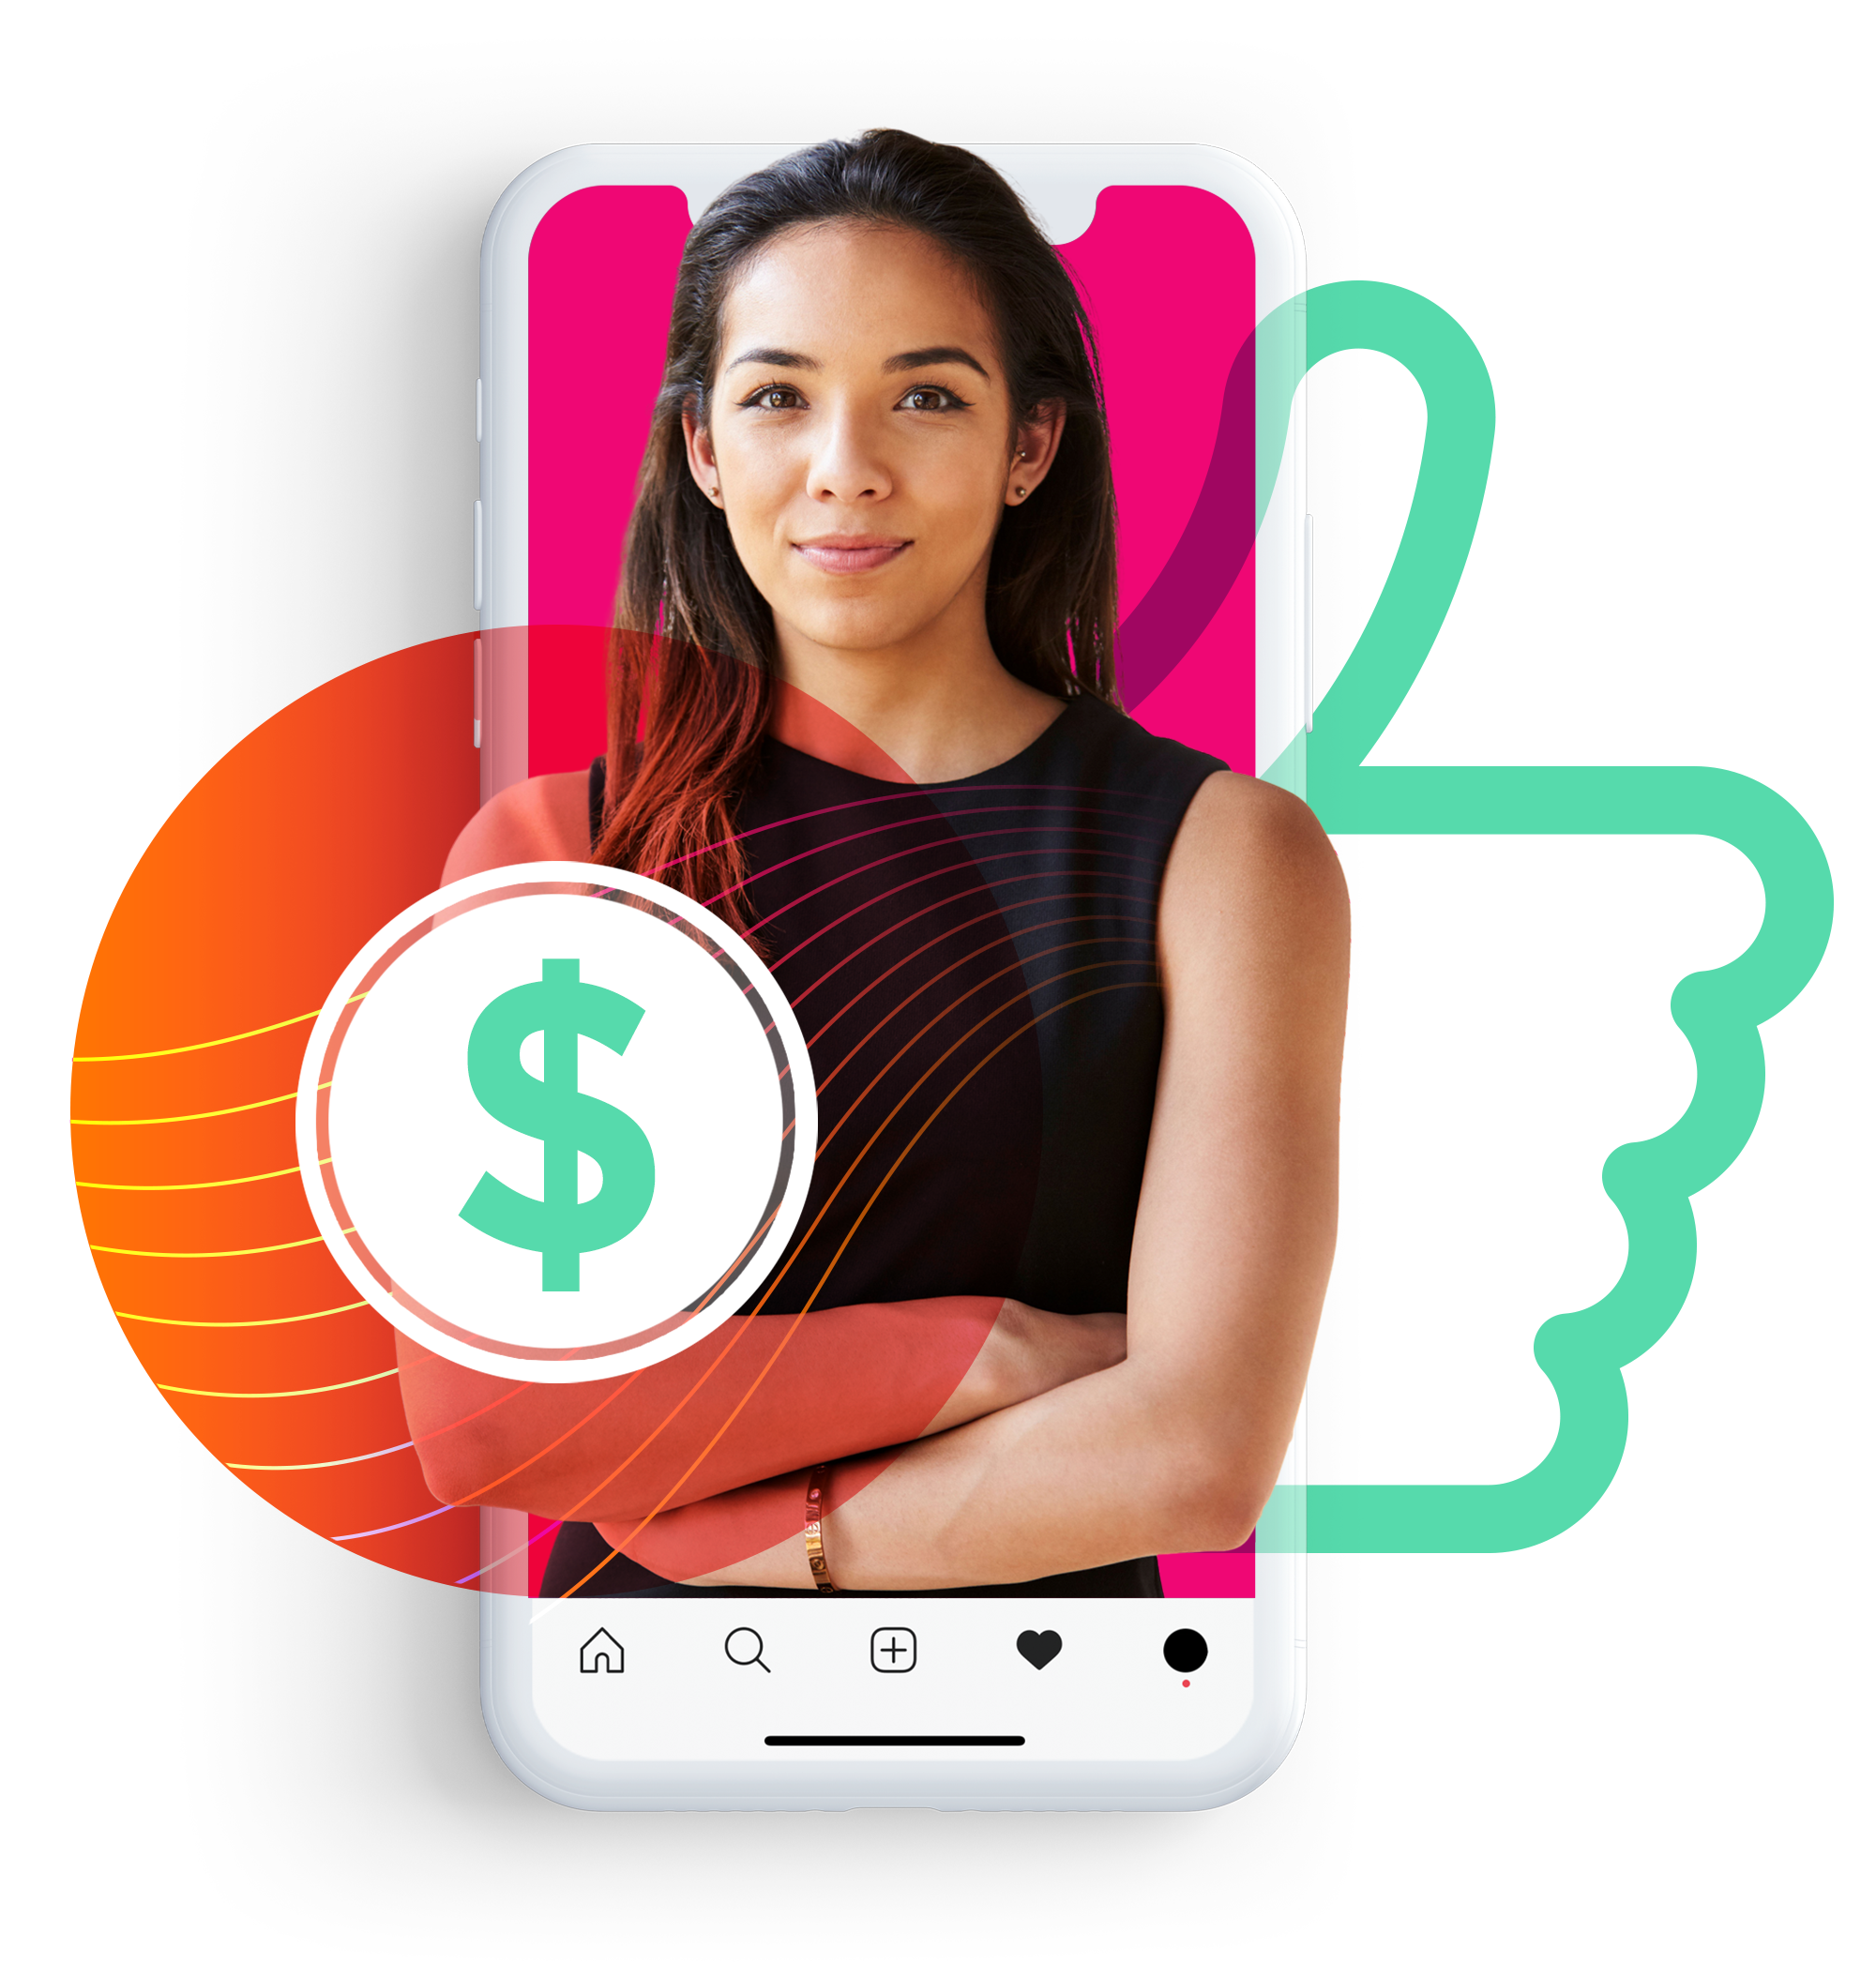 woman with arms crossed on phone with like icon and money icon